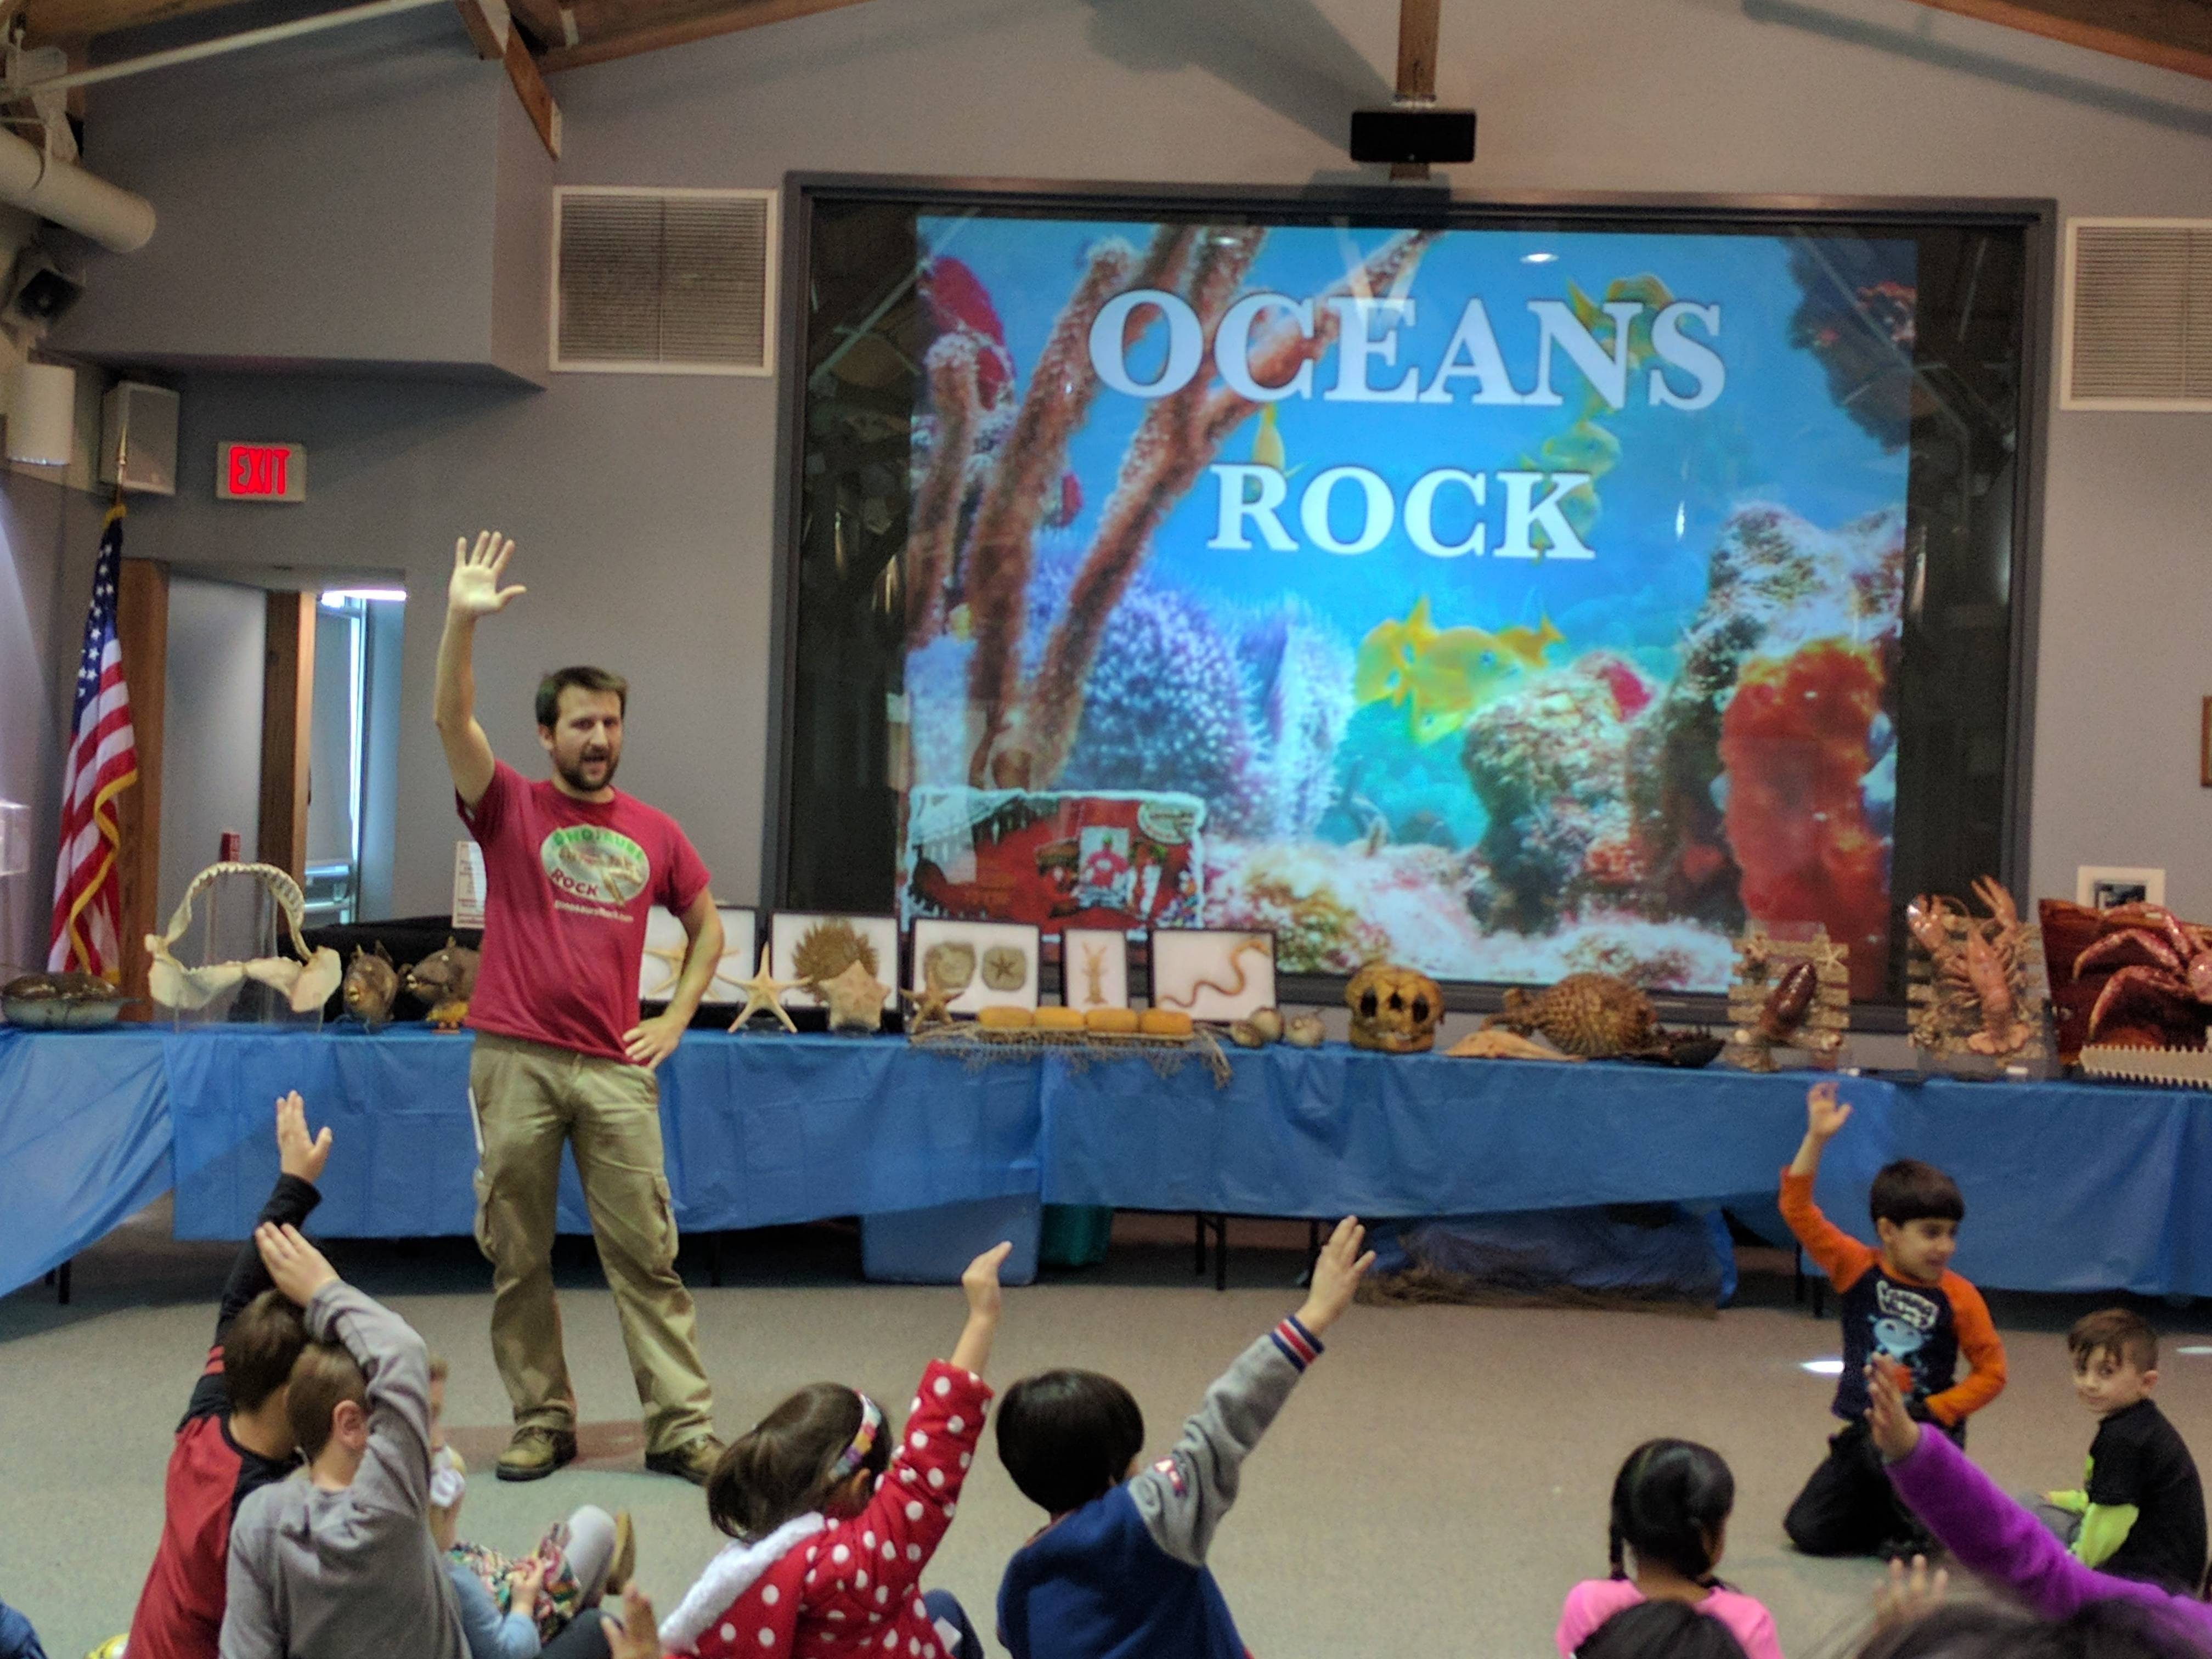 9c635327b06281cc0196_a_Peter_Brown_presents_Oceans_Rock_at_the_Montville_Township_Public_Library_7.jpg